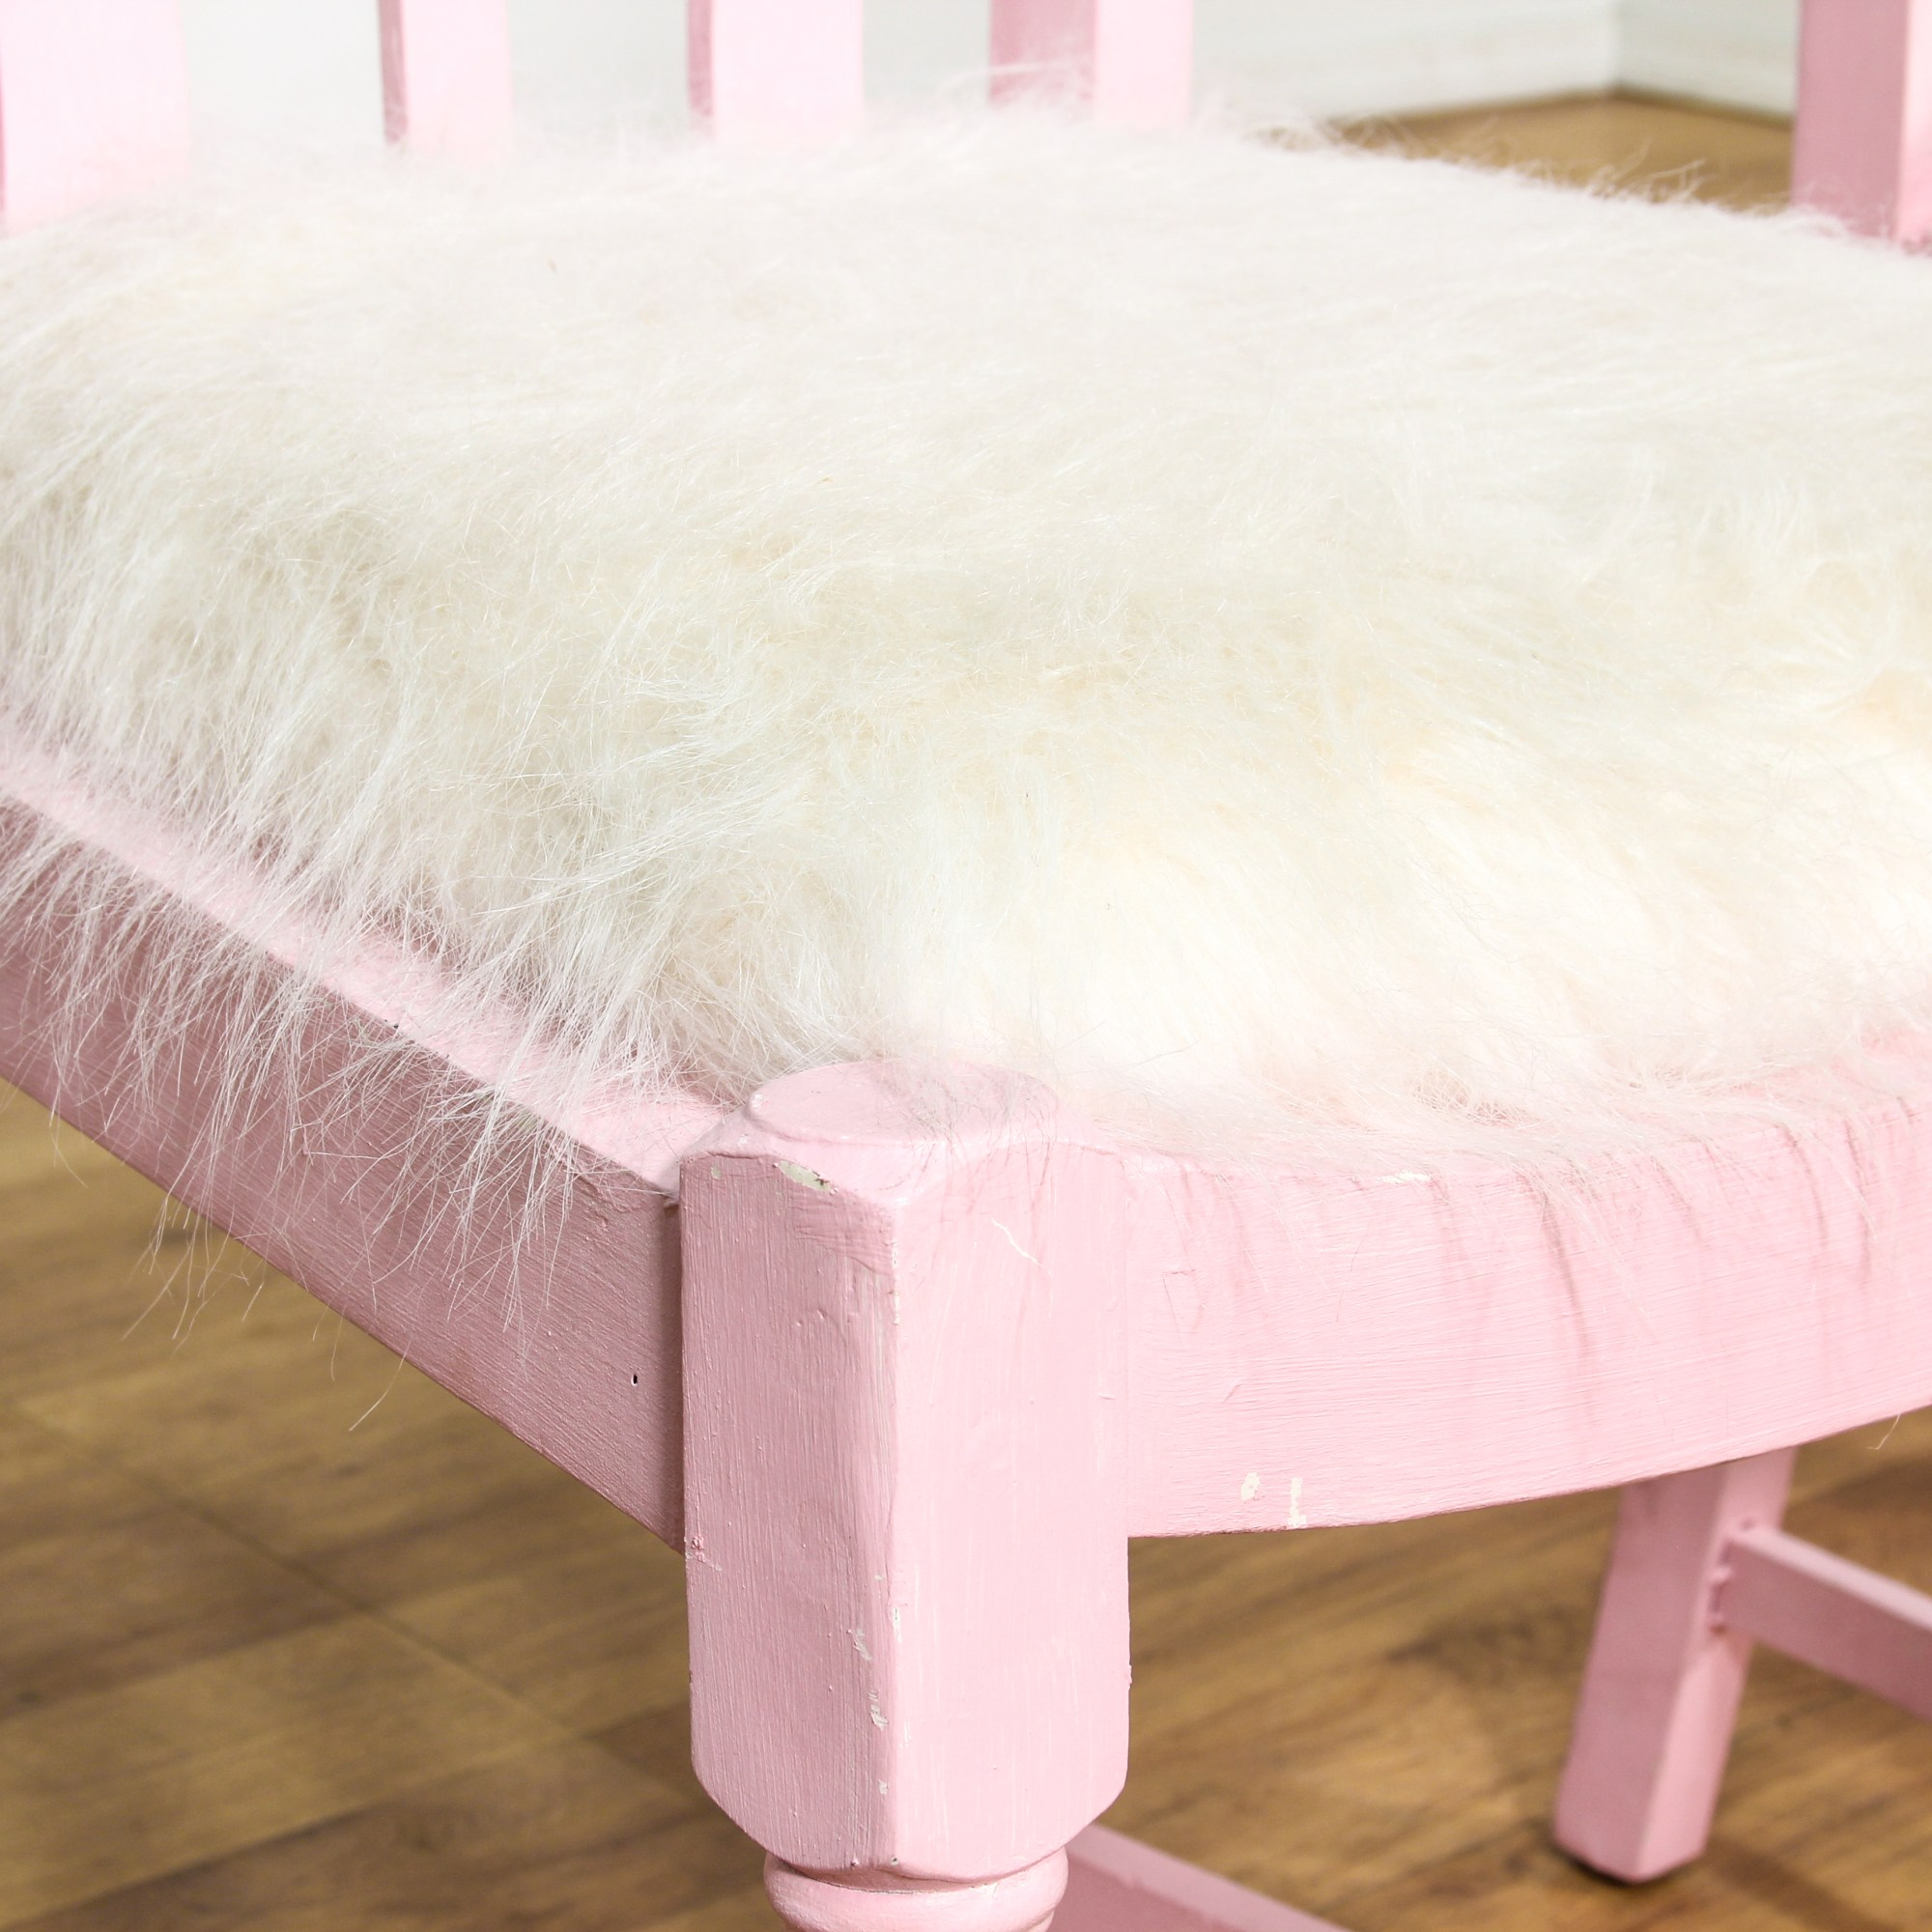 Fuzzy White Chair Pair Of Pink Chairs W White Fuzzy Seats Loveseat